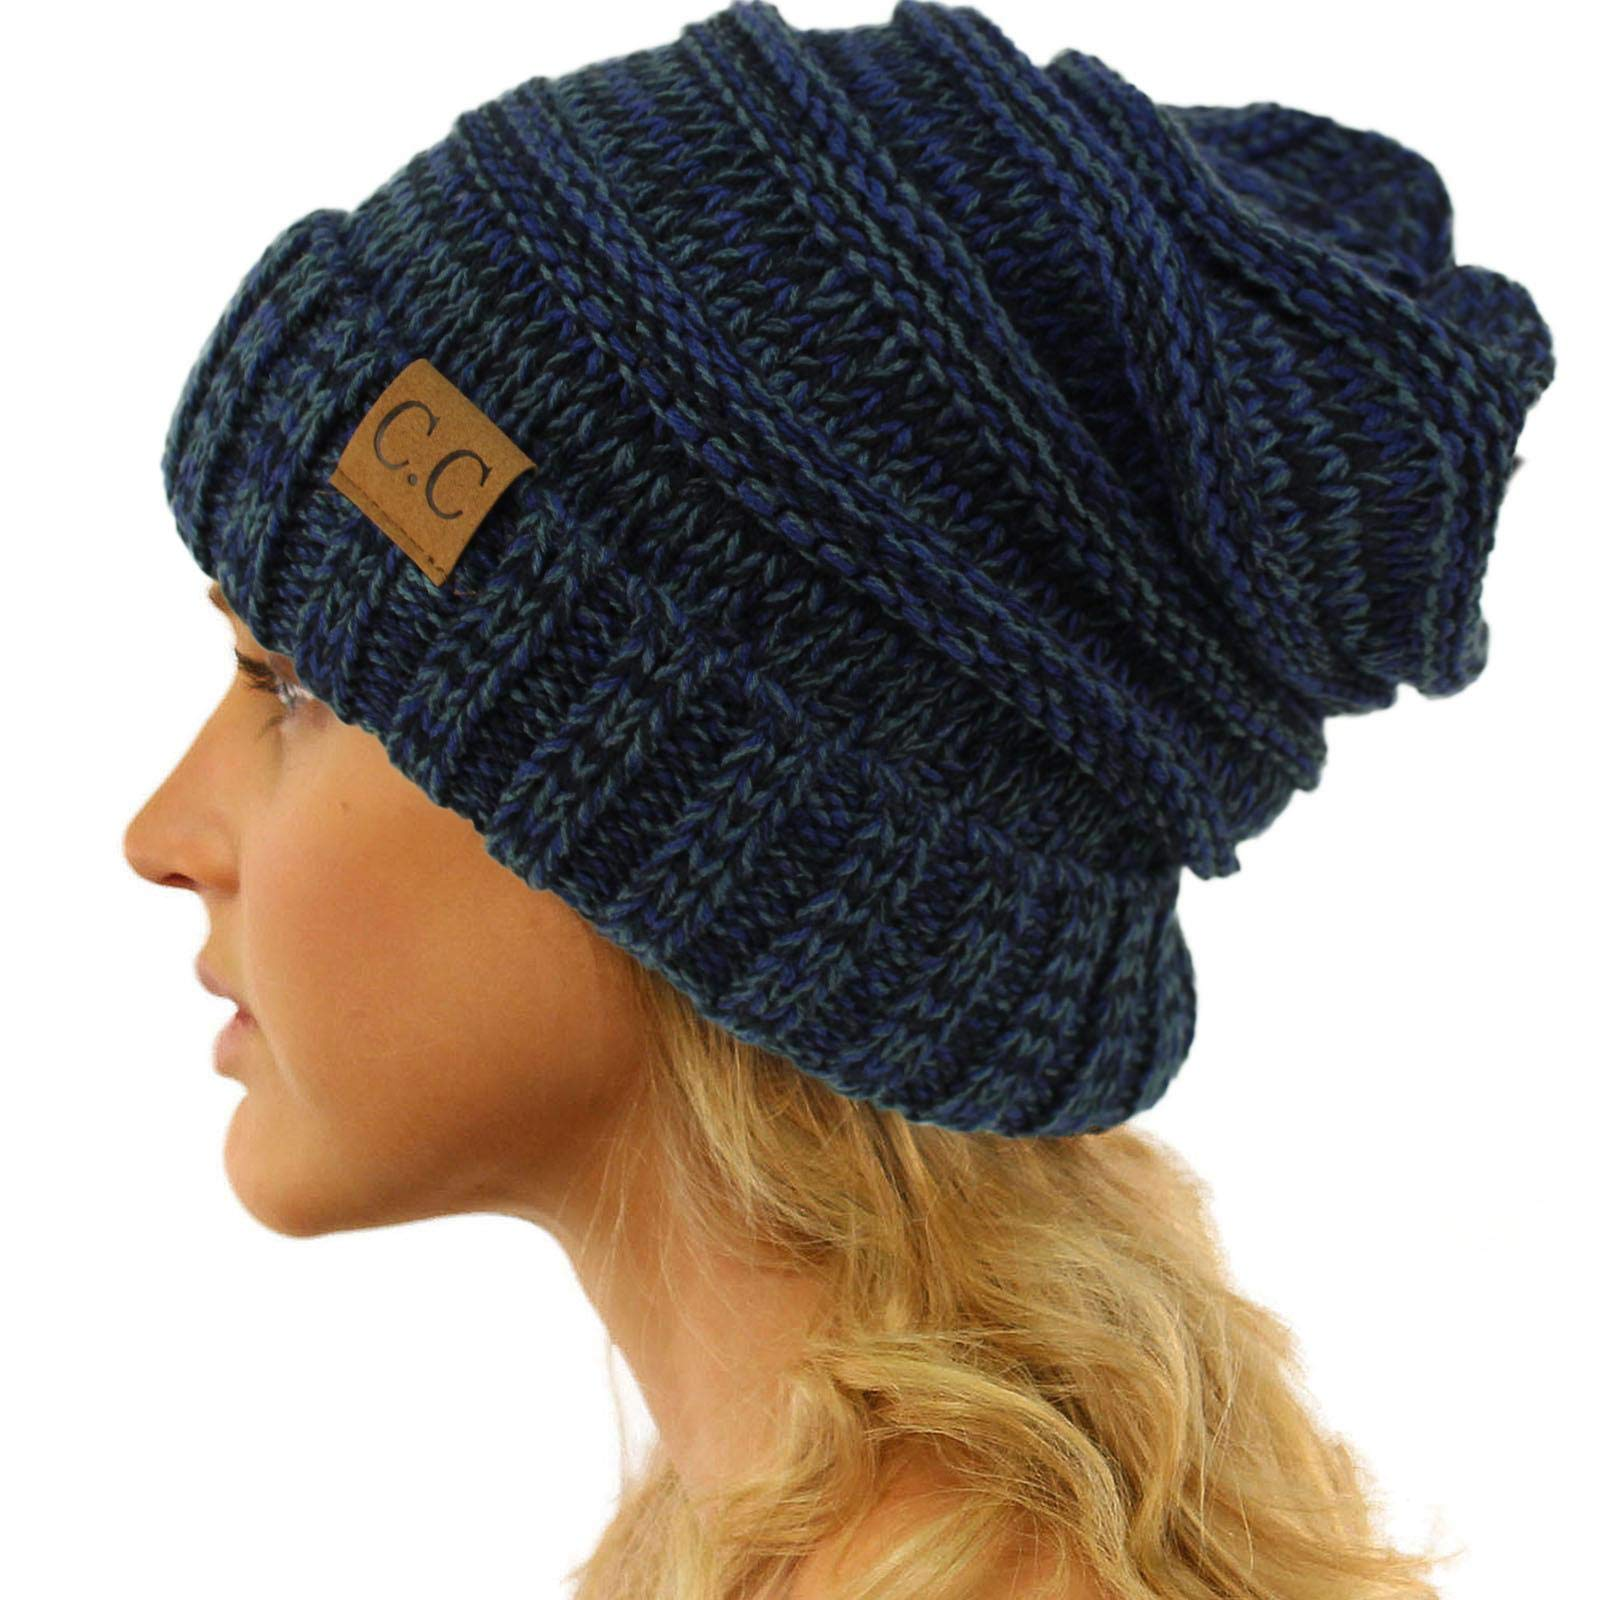 e9a0705d7a2 CC Winter Trendy Warm Oversized Chunky Baggy Stretchy Slouchy Skully Beanie  Hat Mix Navy